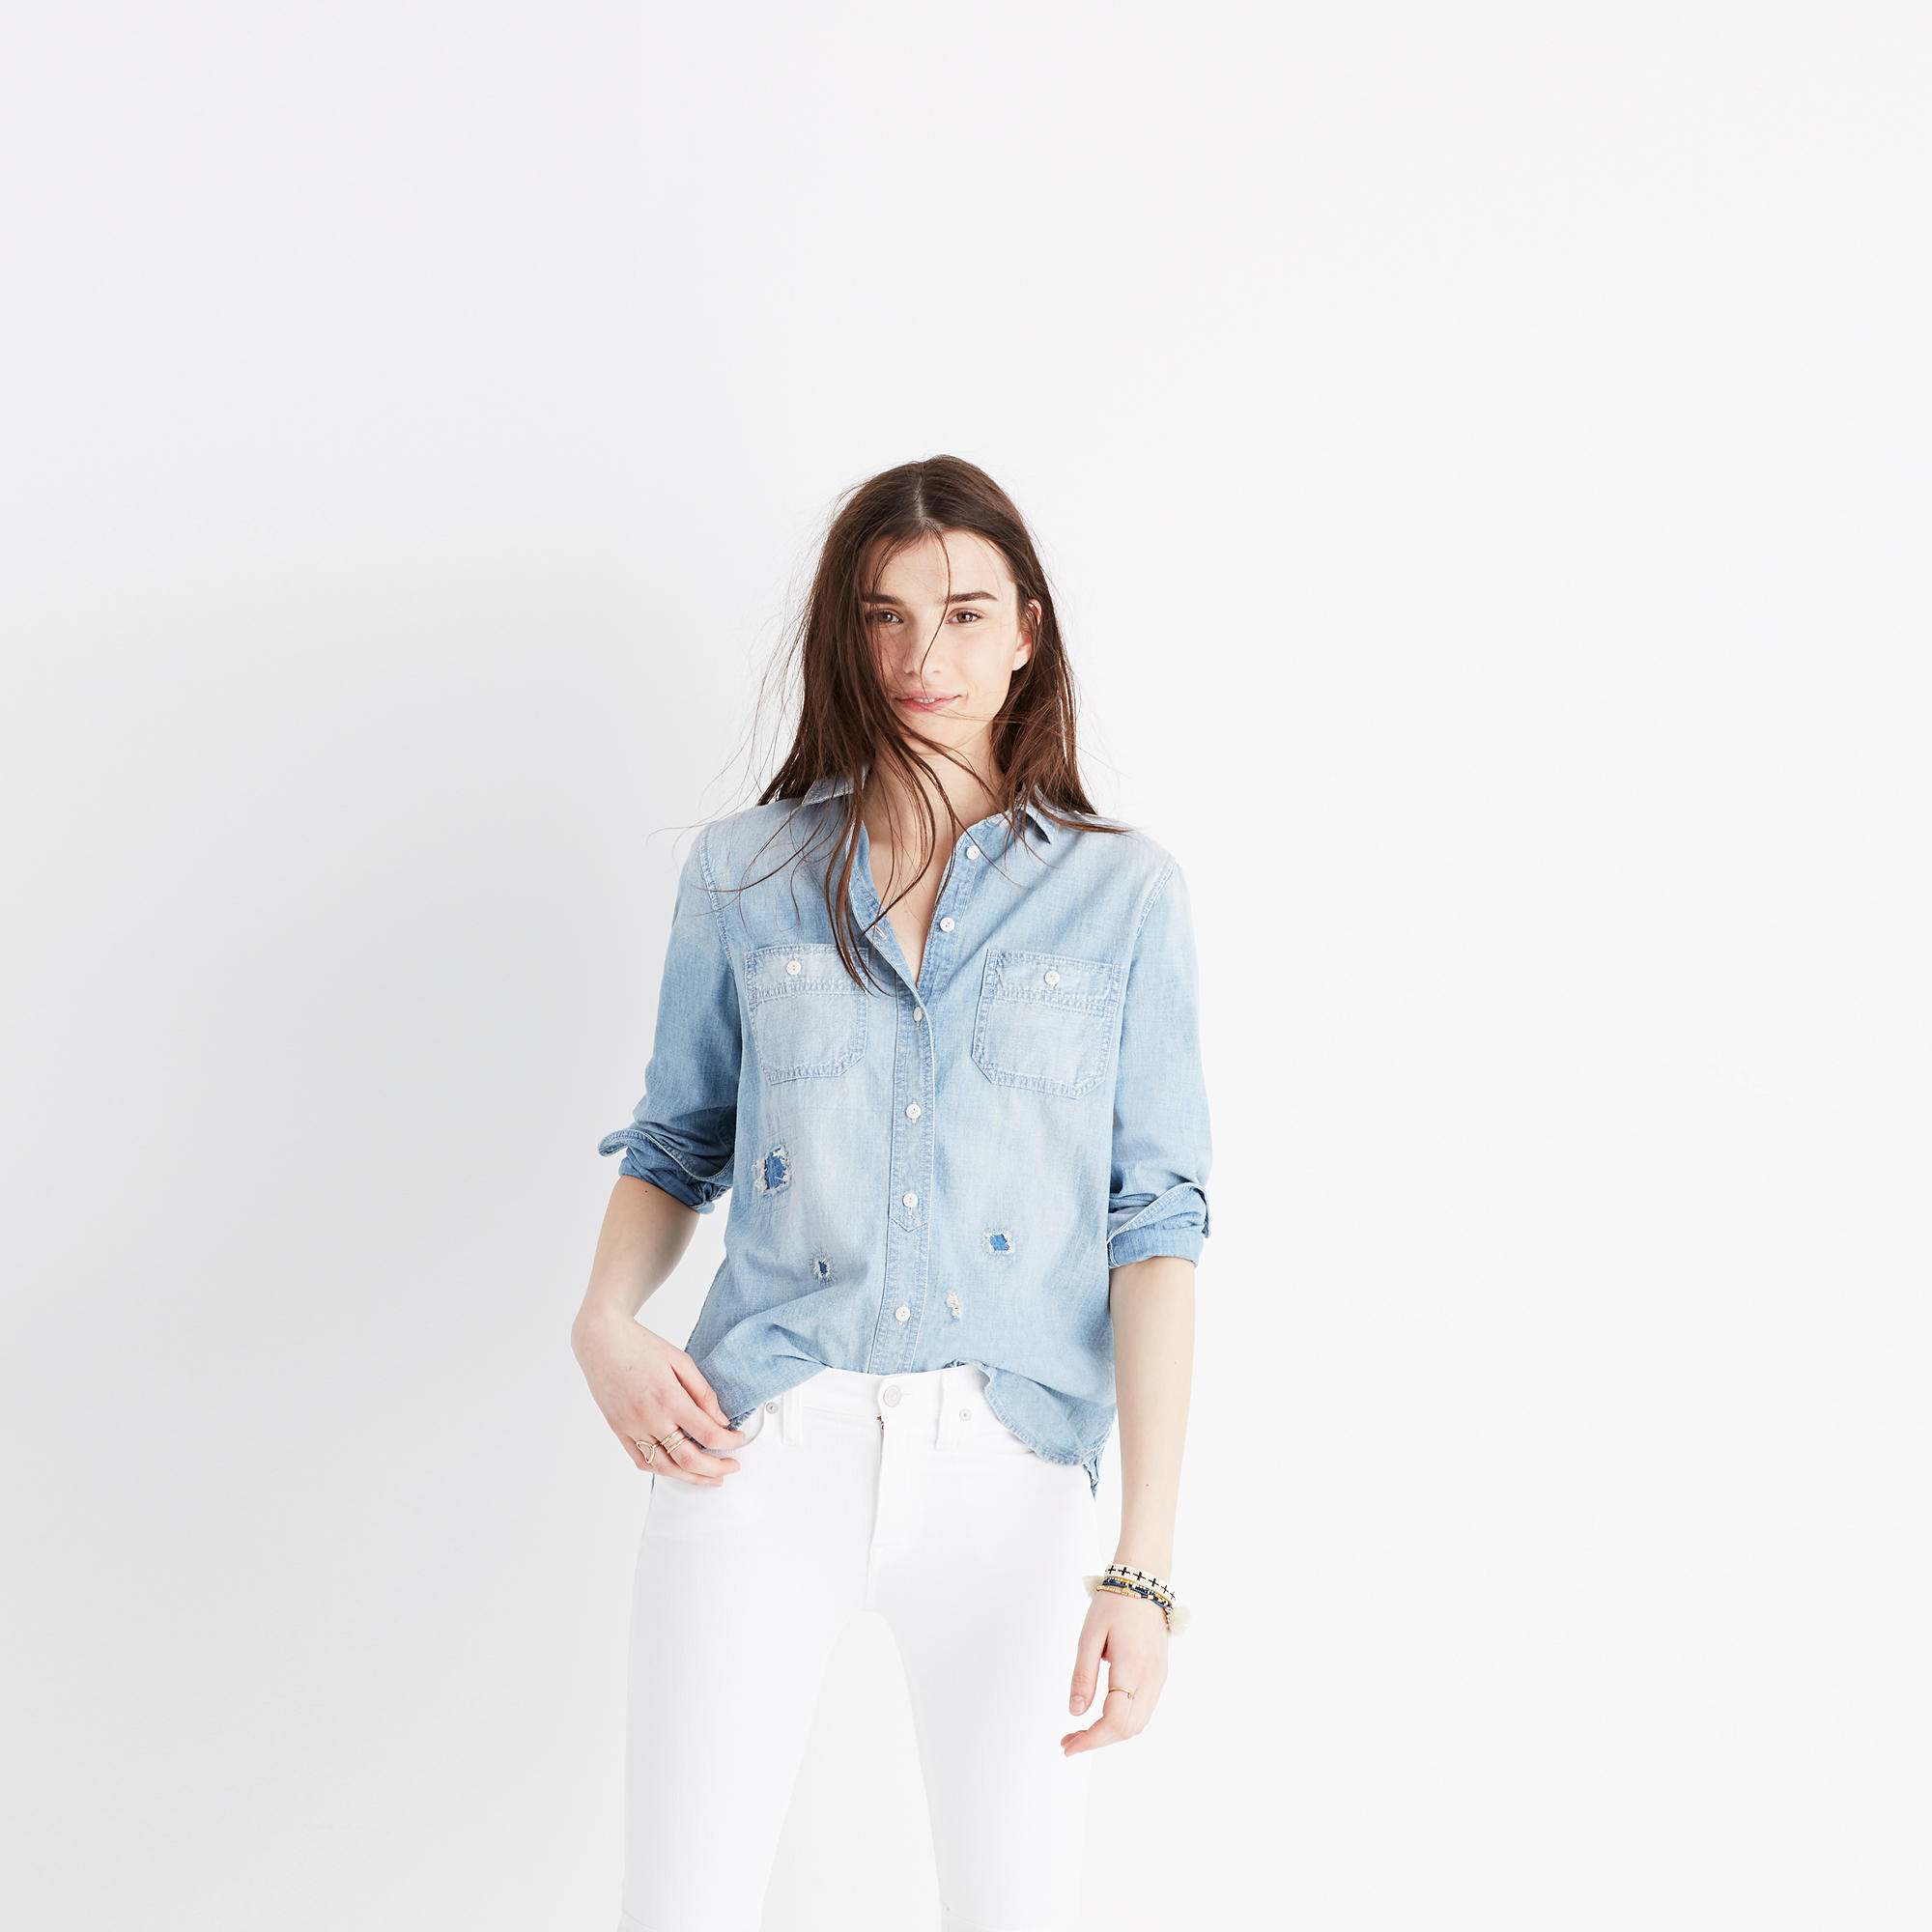 Women's Shirts & Tops : Tanks, Tees, Blouses & Chambray | Madewell.com